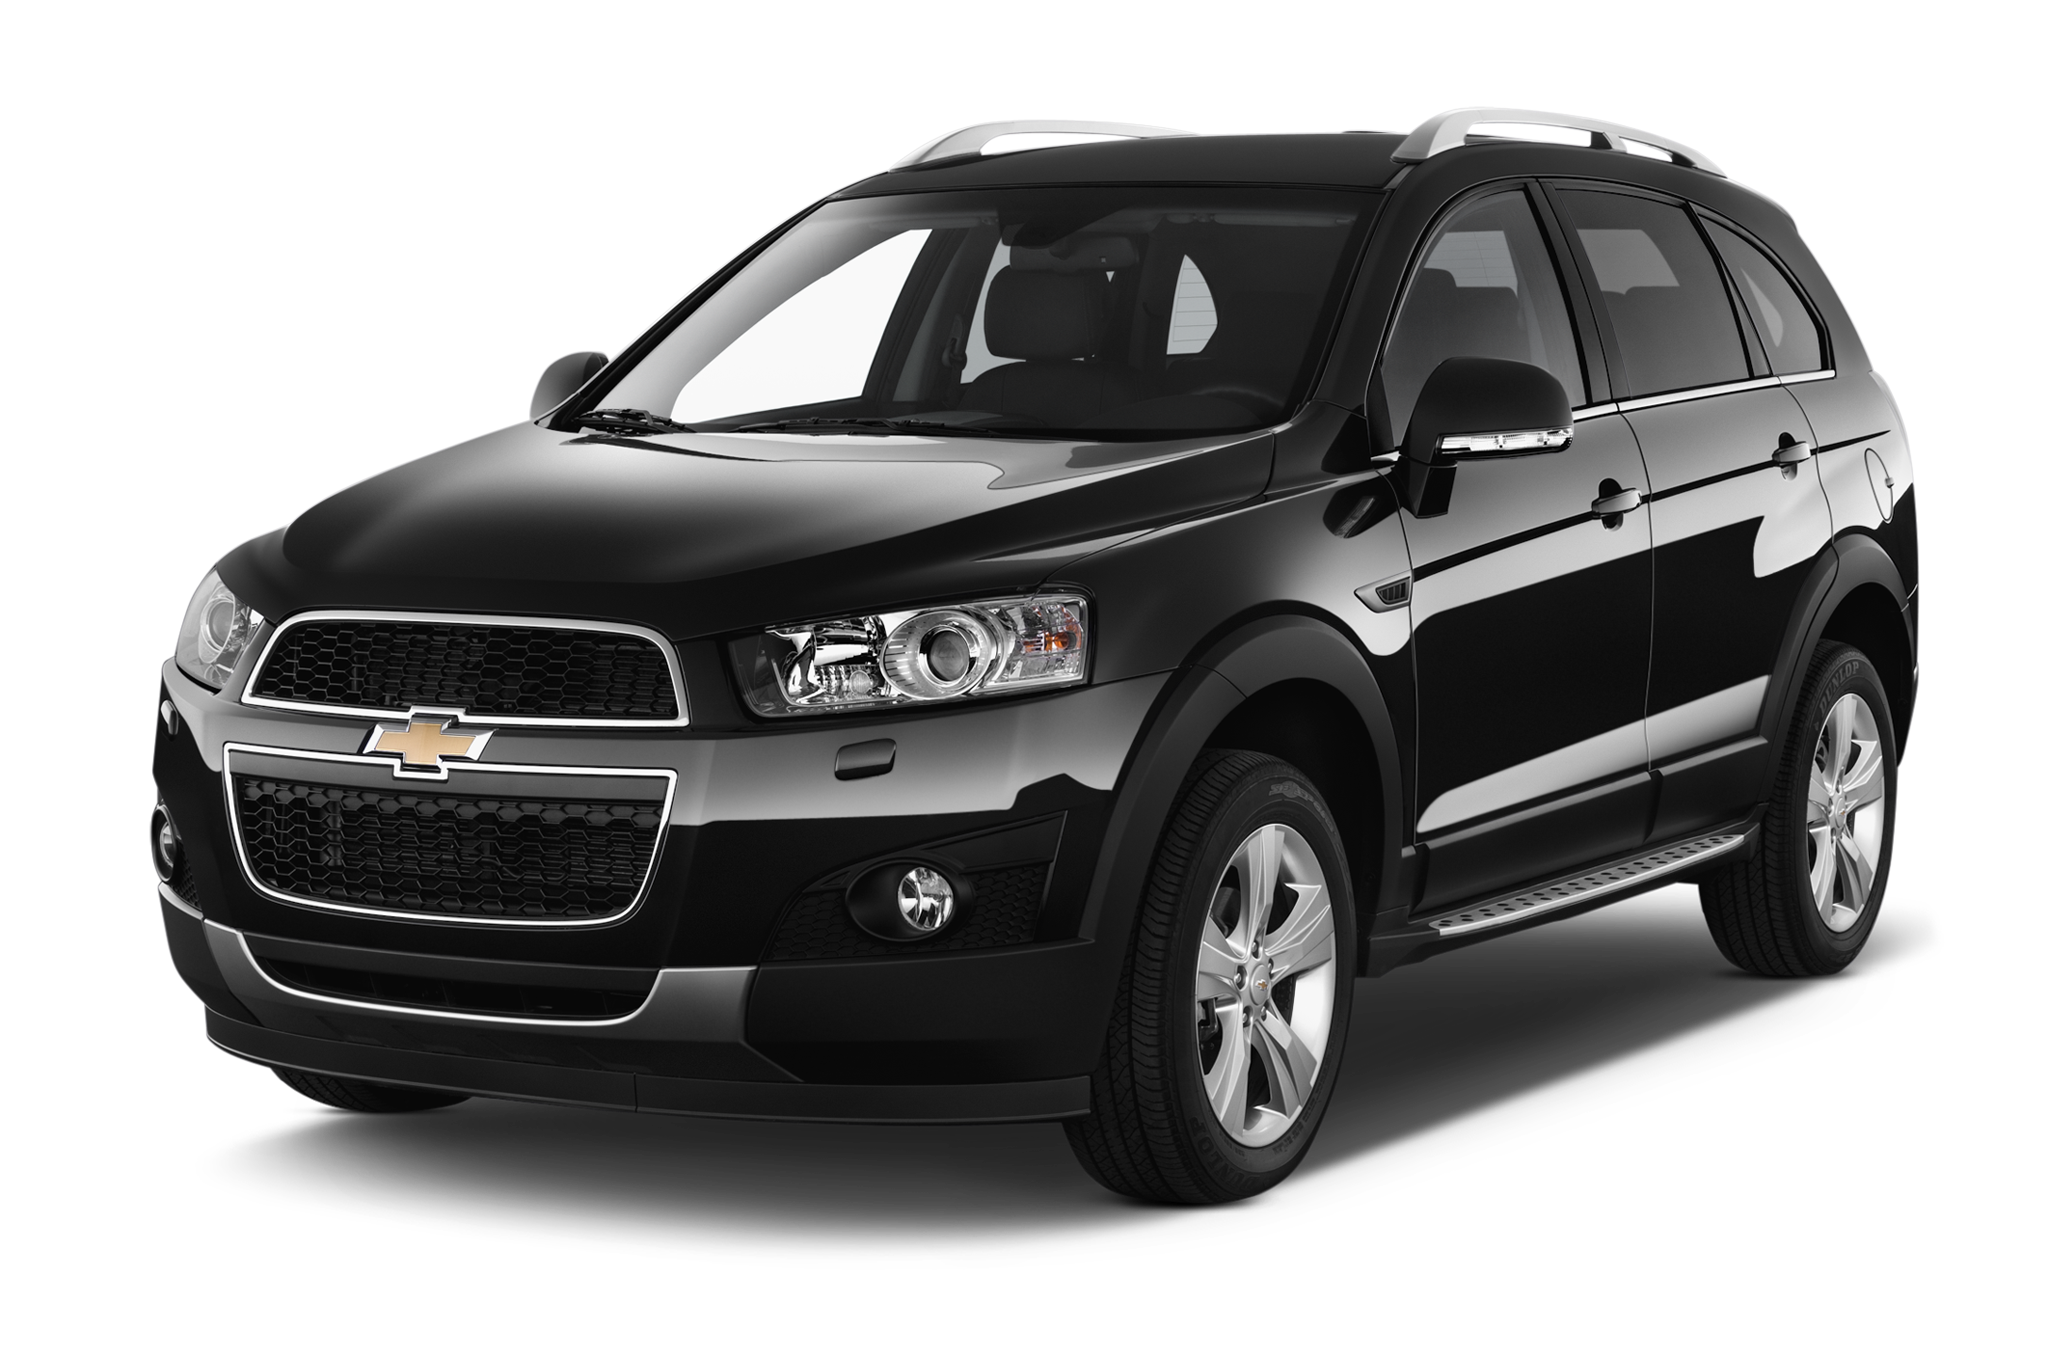 2014 chevrolet captiva. Black Bedroom Furniture Sets. Home Design Ideas